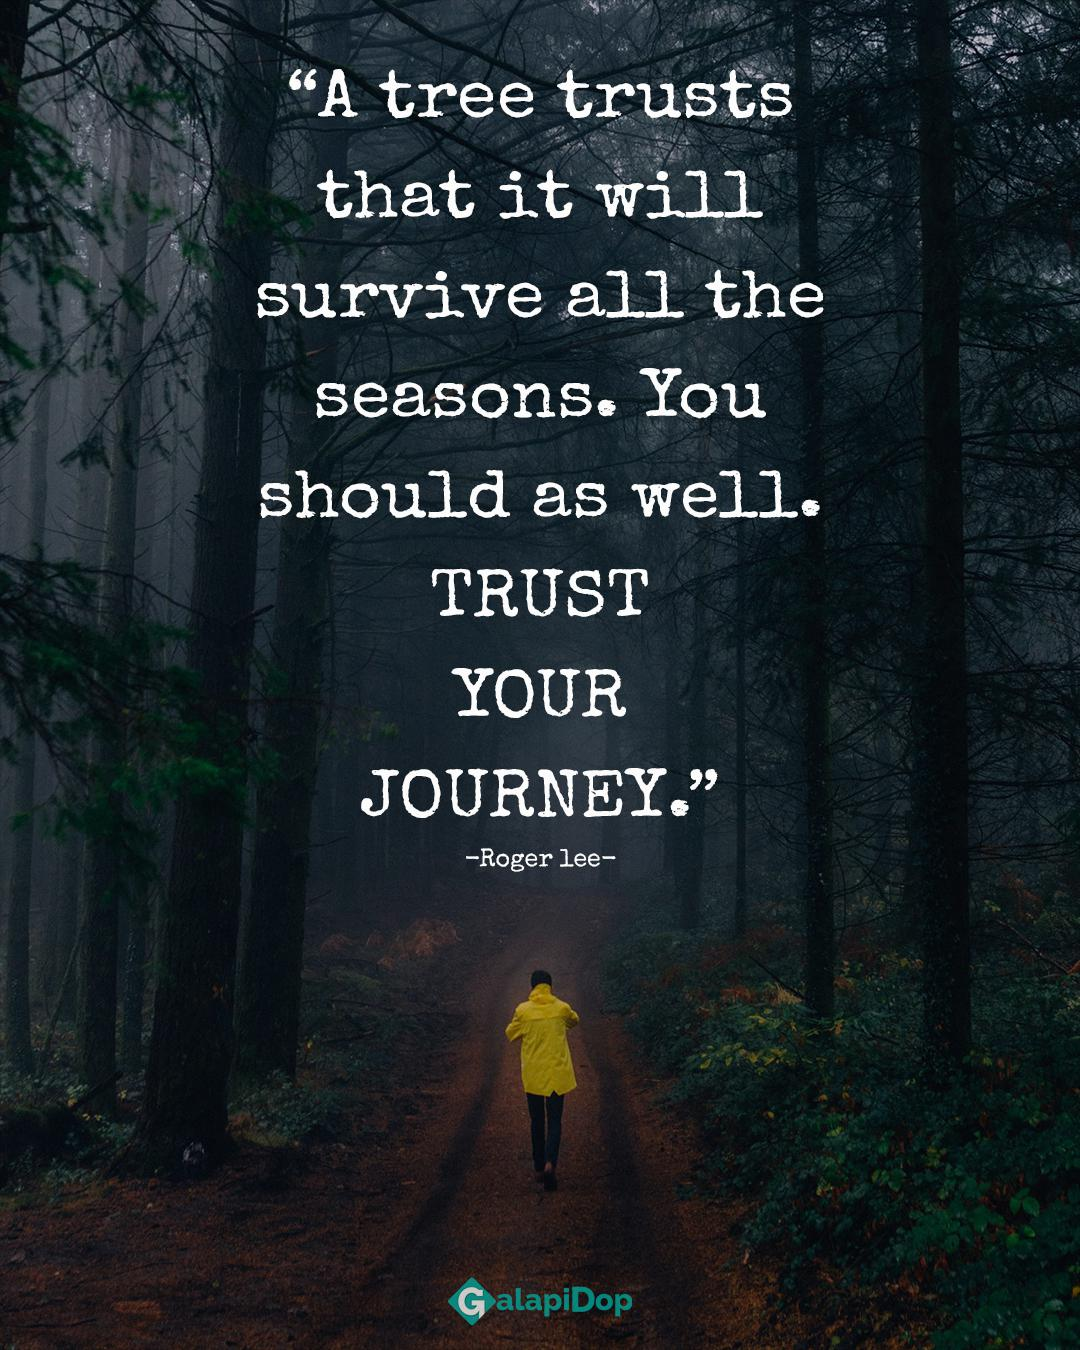 """.35 . """"A tree trusts that it Wlll survive all the seasons. You should as well. TRUST YOUR JOURNEY."""" -Roger lee- https://inspirational.ly"""